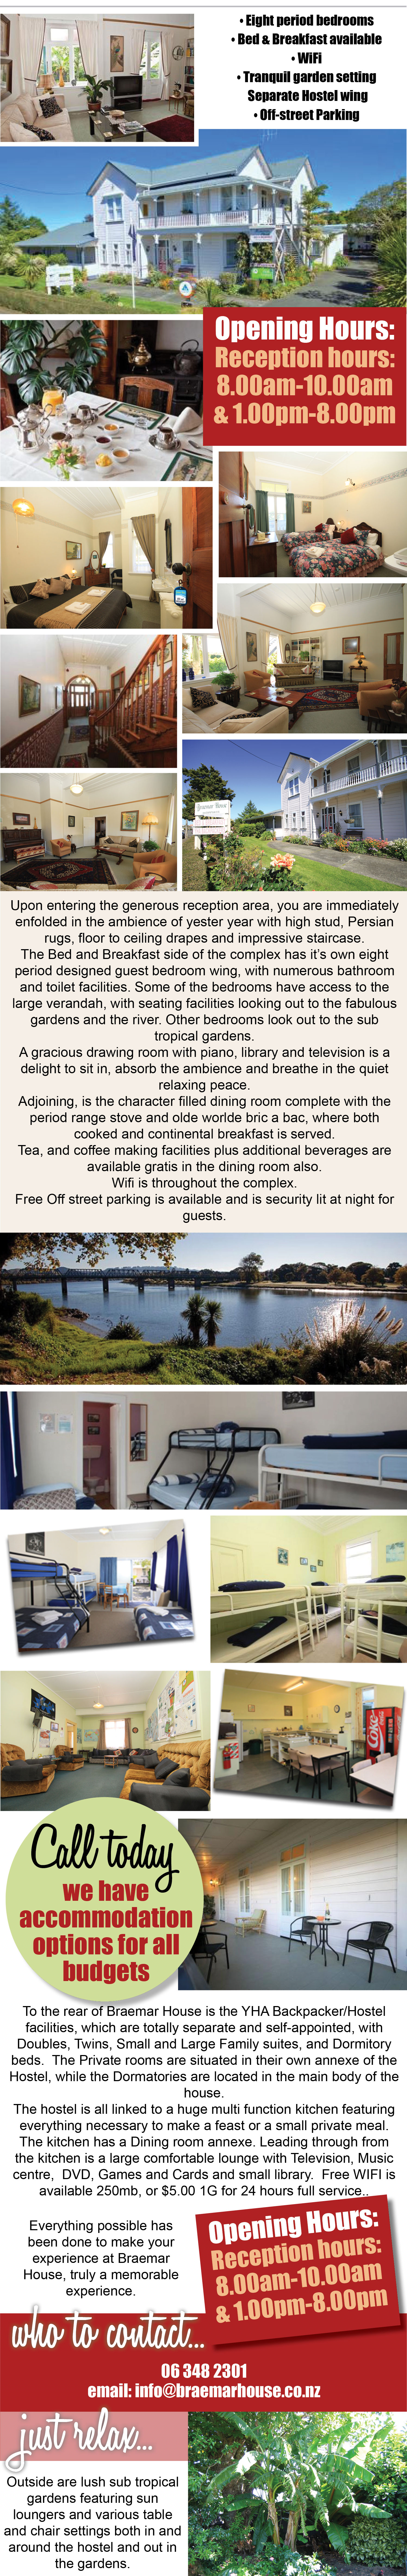 Braemar House, Wanganui, Victorian Homestead. Bed & Breakfast, Hostel, Backpackers, accommodation for all budgets, Wifi, Wanganui, Whanganui River views, off-street parking, Wanganui accommodation, place to stay